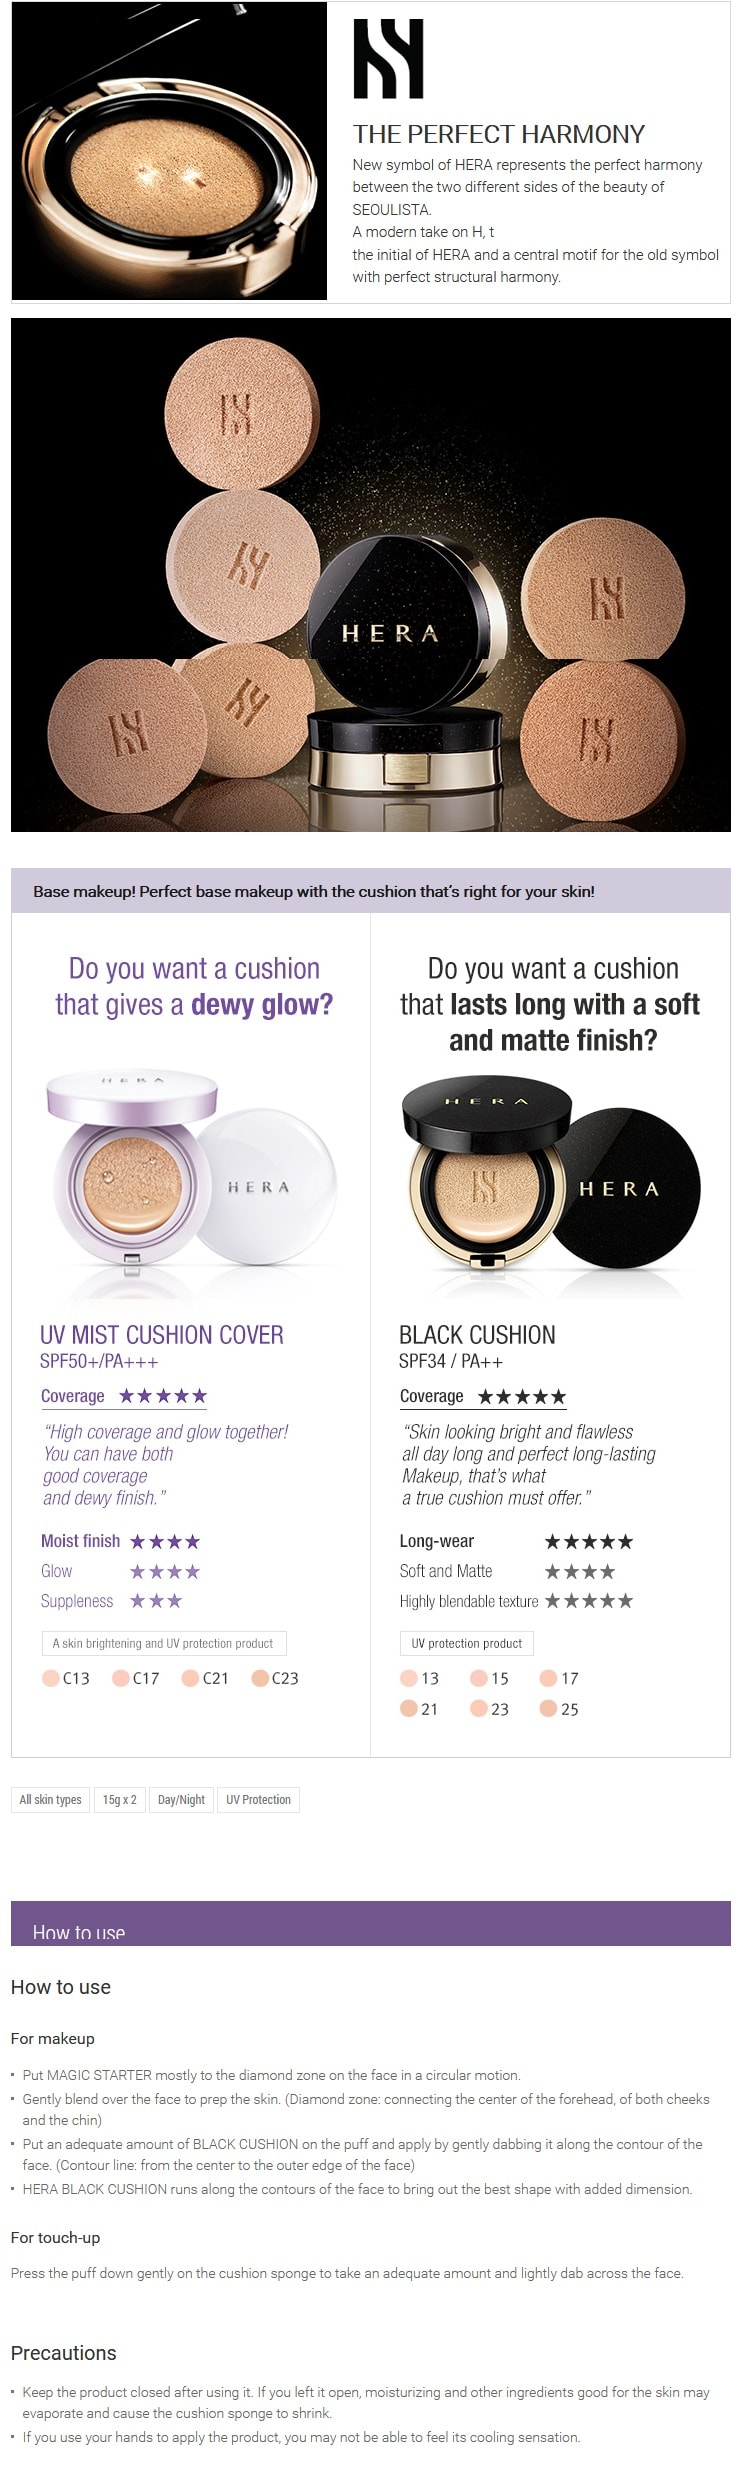 Hera Black Cushion SPF34/PA++ [With Refill]